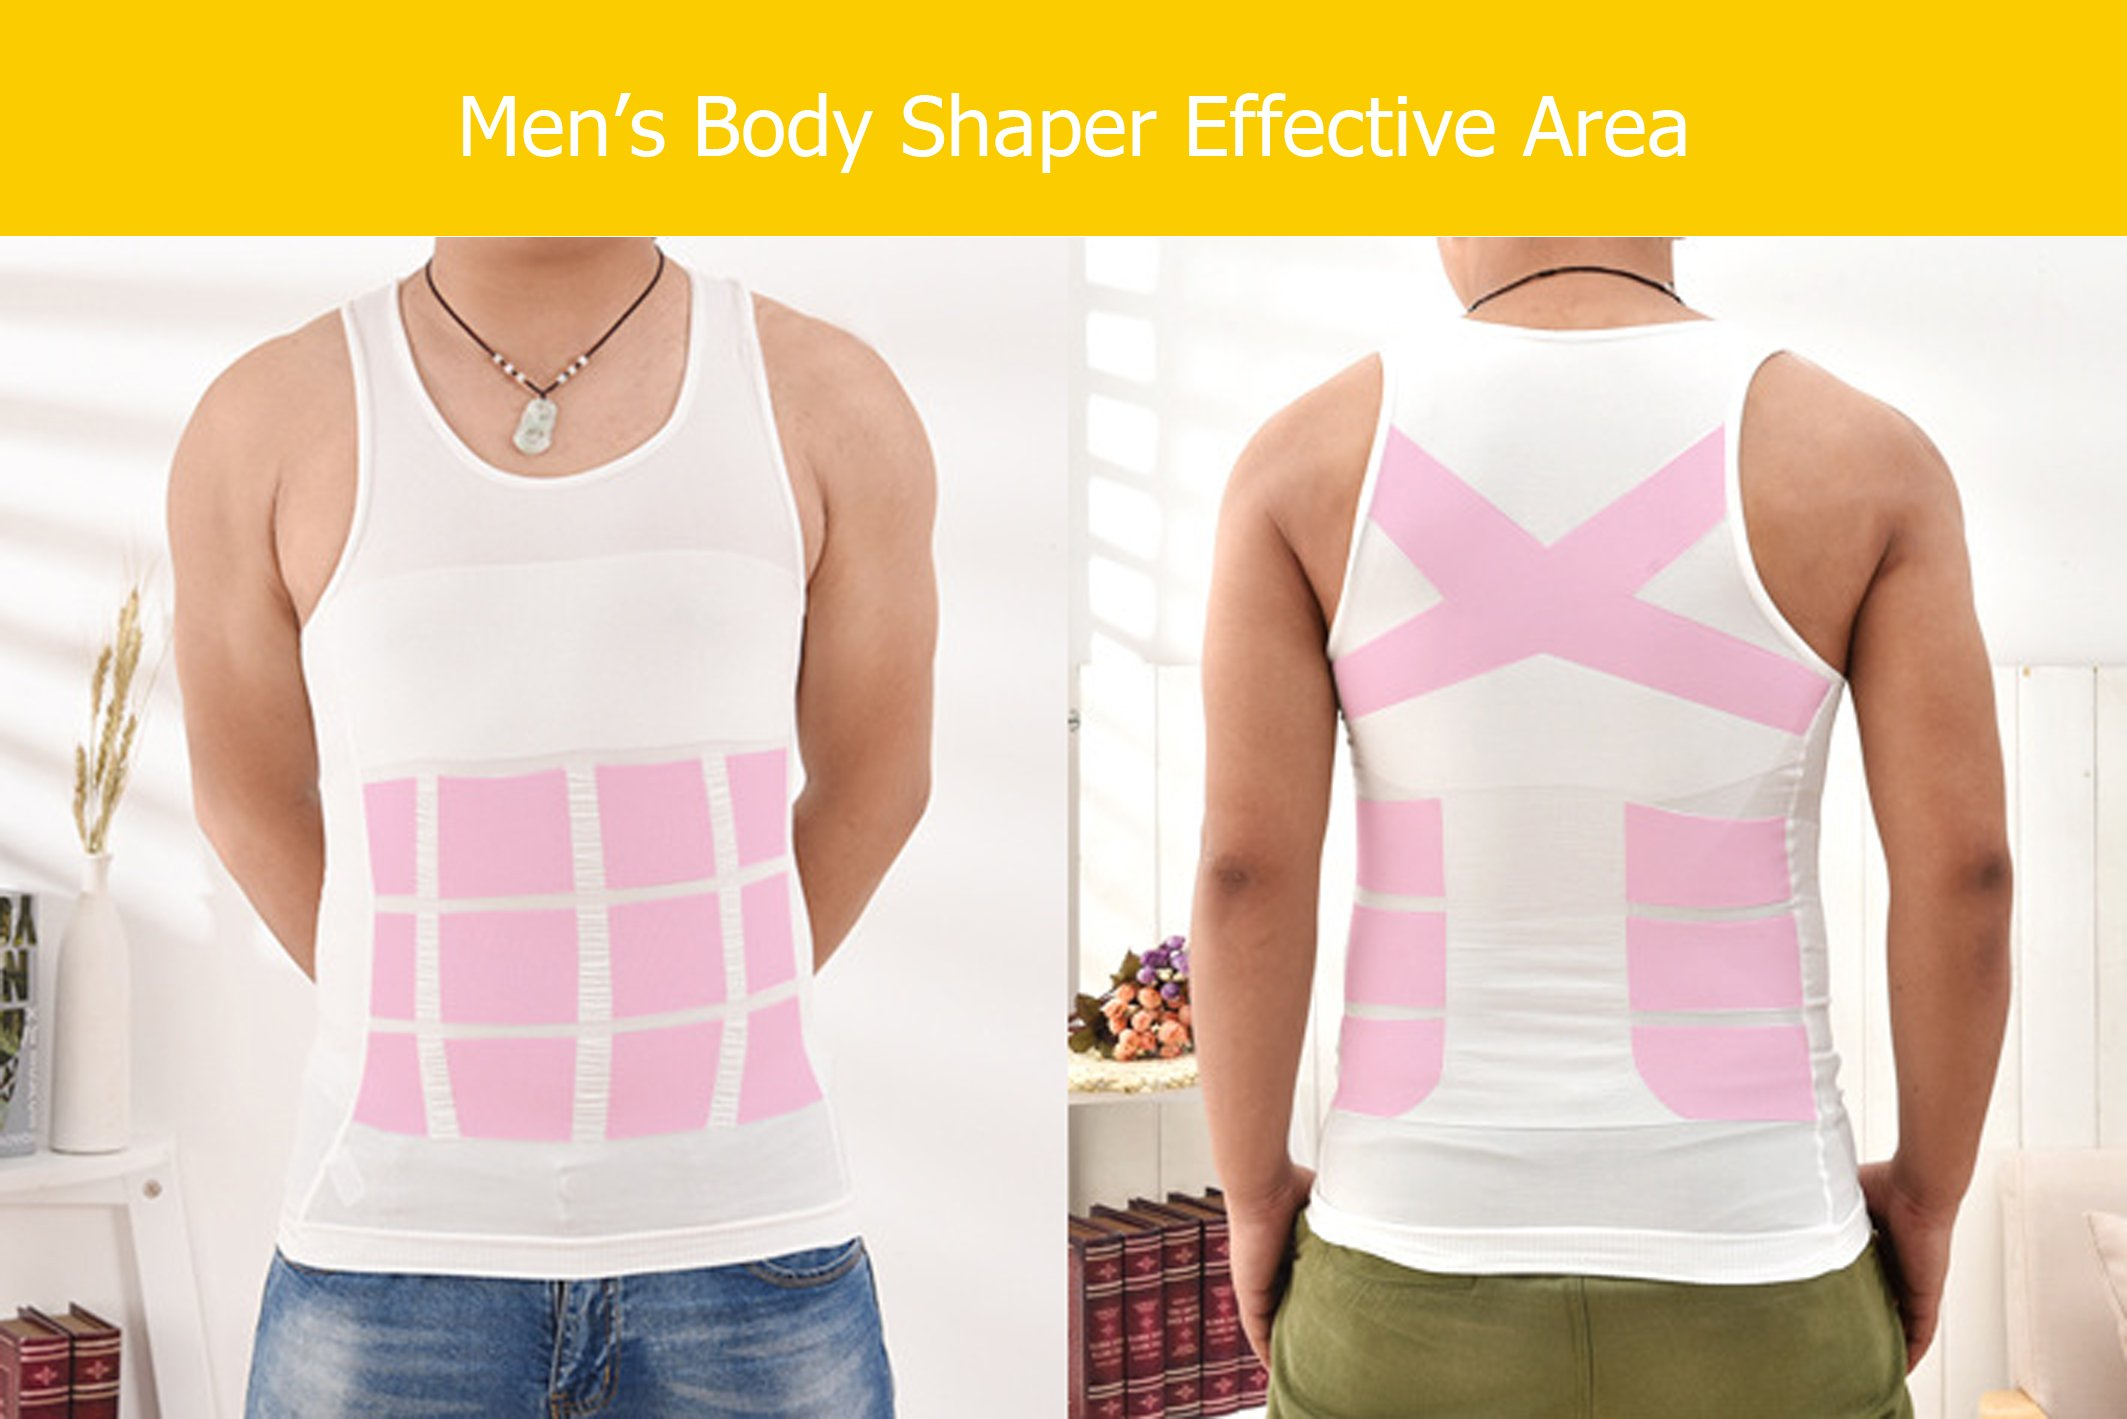 3a5d30677132e Wise Men s Compression Shirt - Tummy Slimming Body Shapers - Belly  Compressions Vest   Compression Tops   Sports   Outdoors - tibs